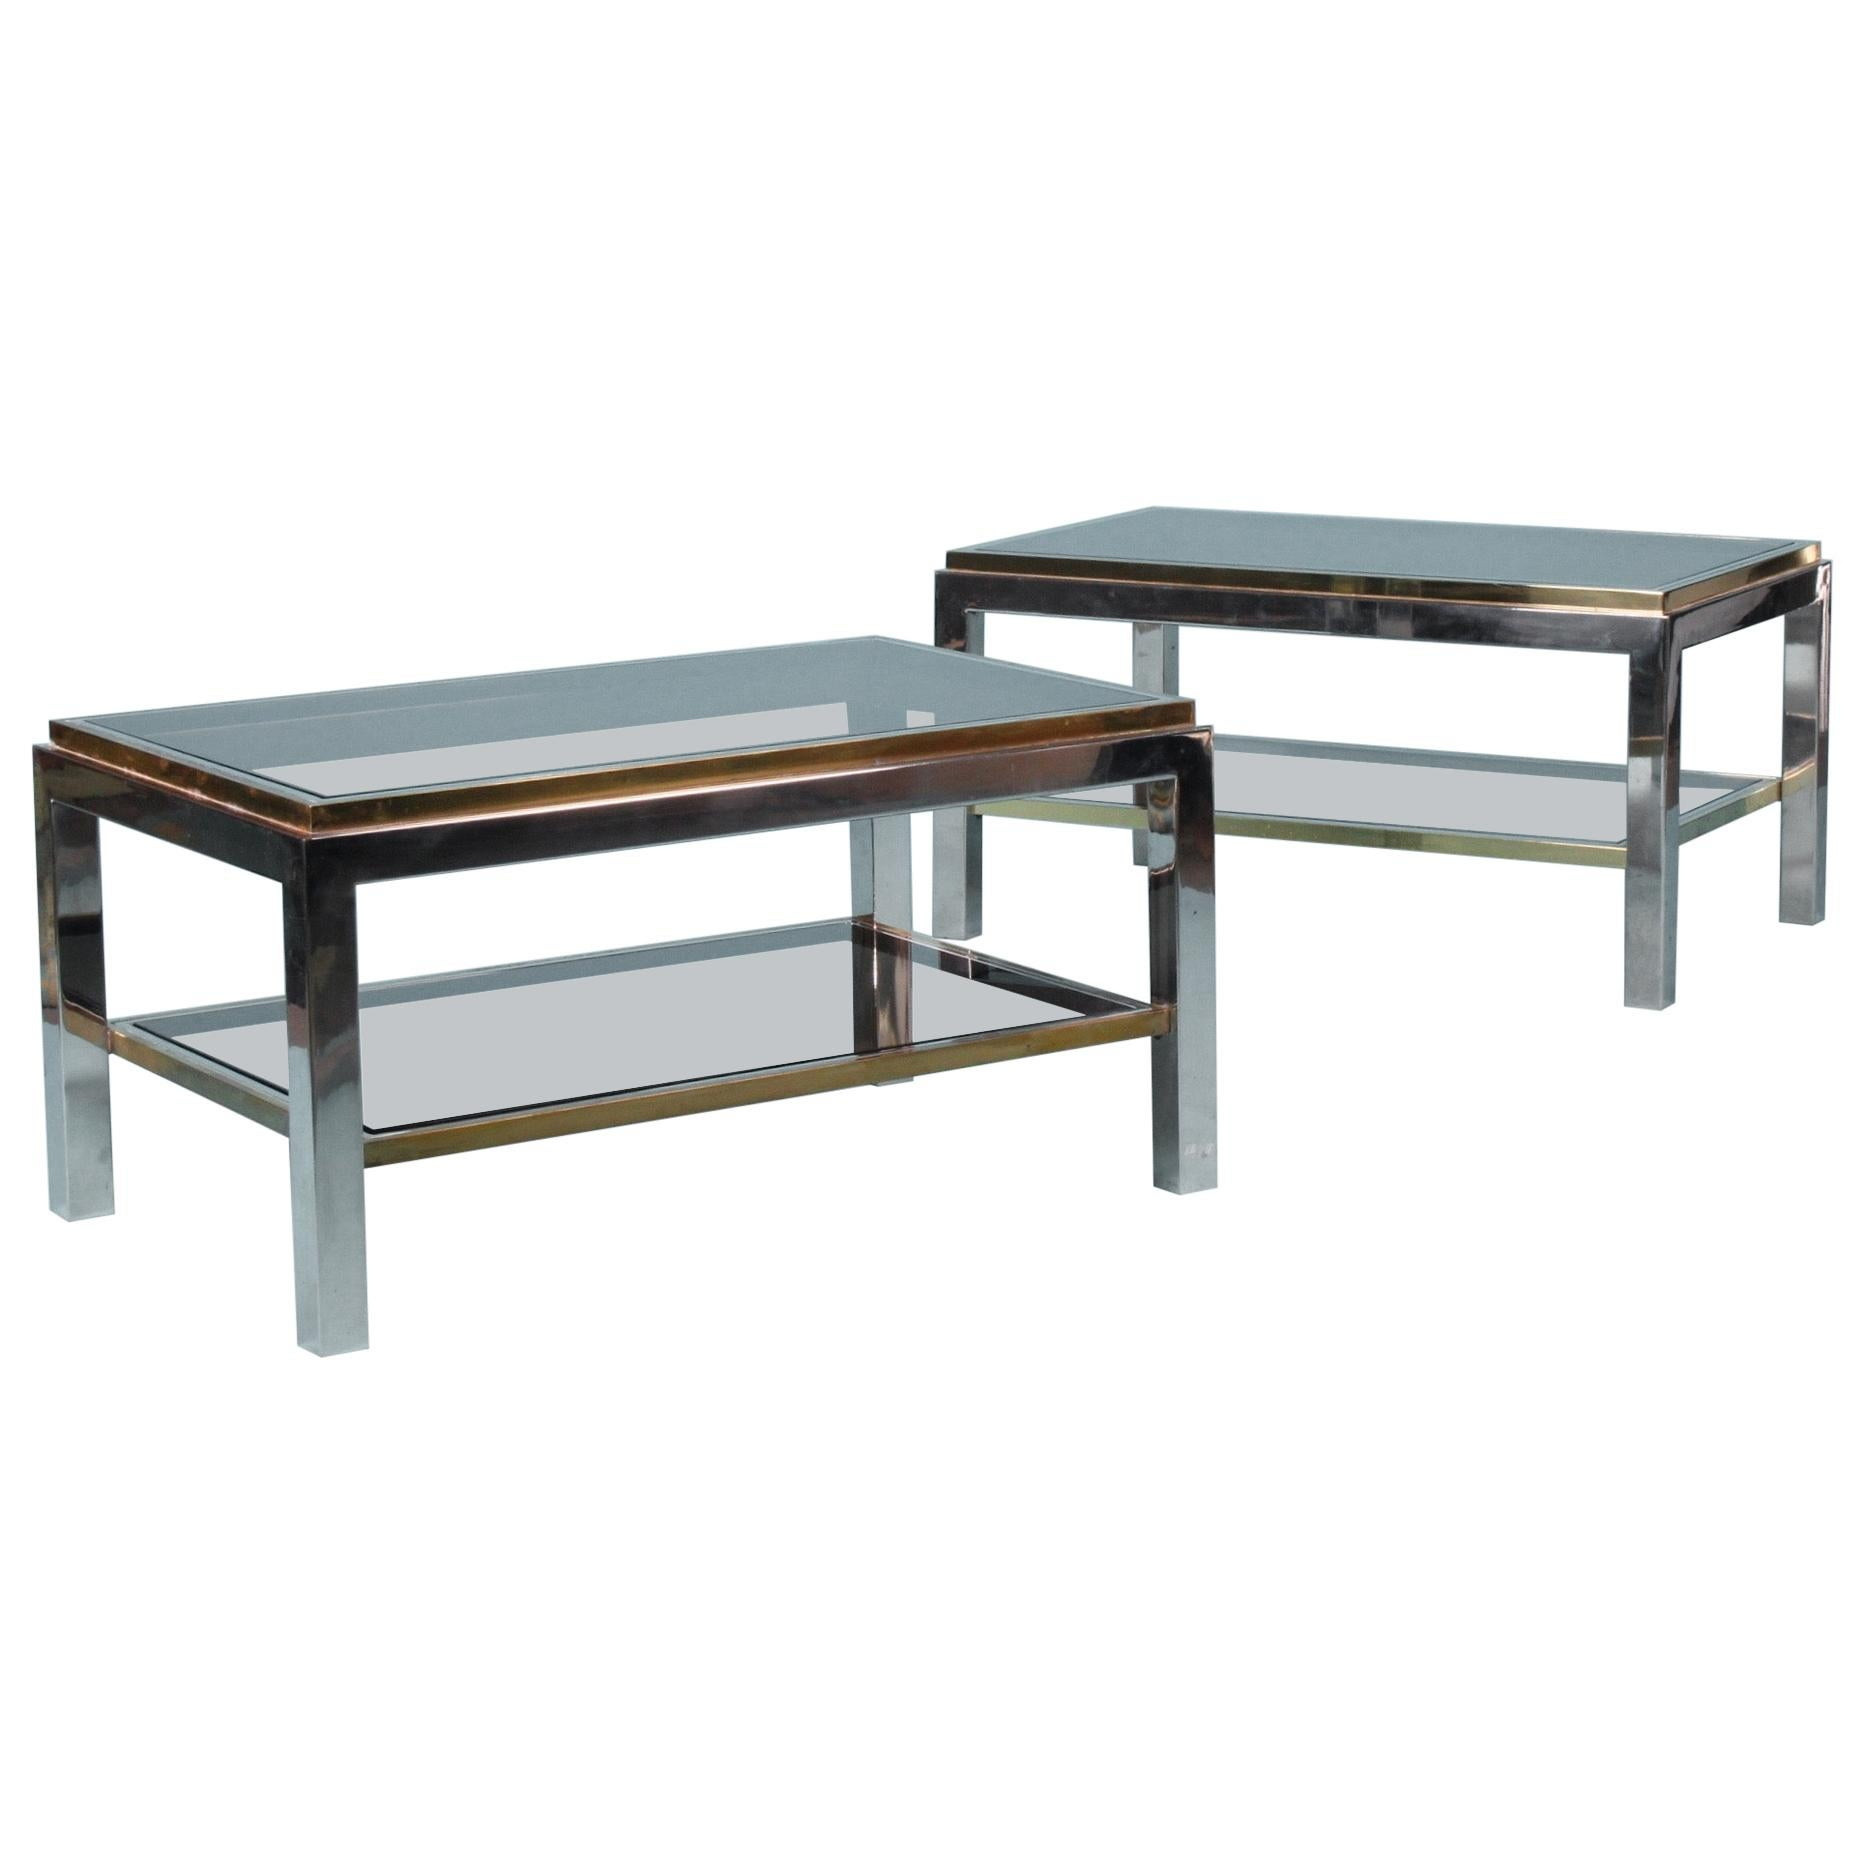 Signed Willy Rizzo Pair of Coffee Table